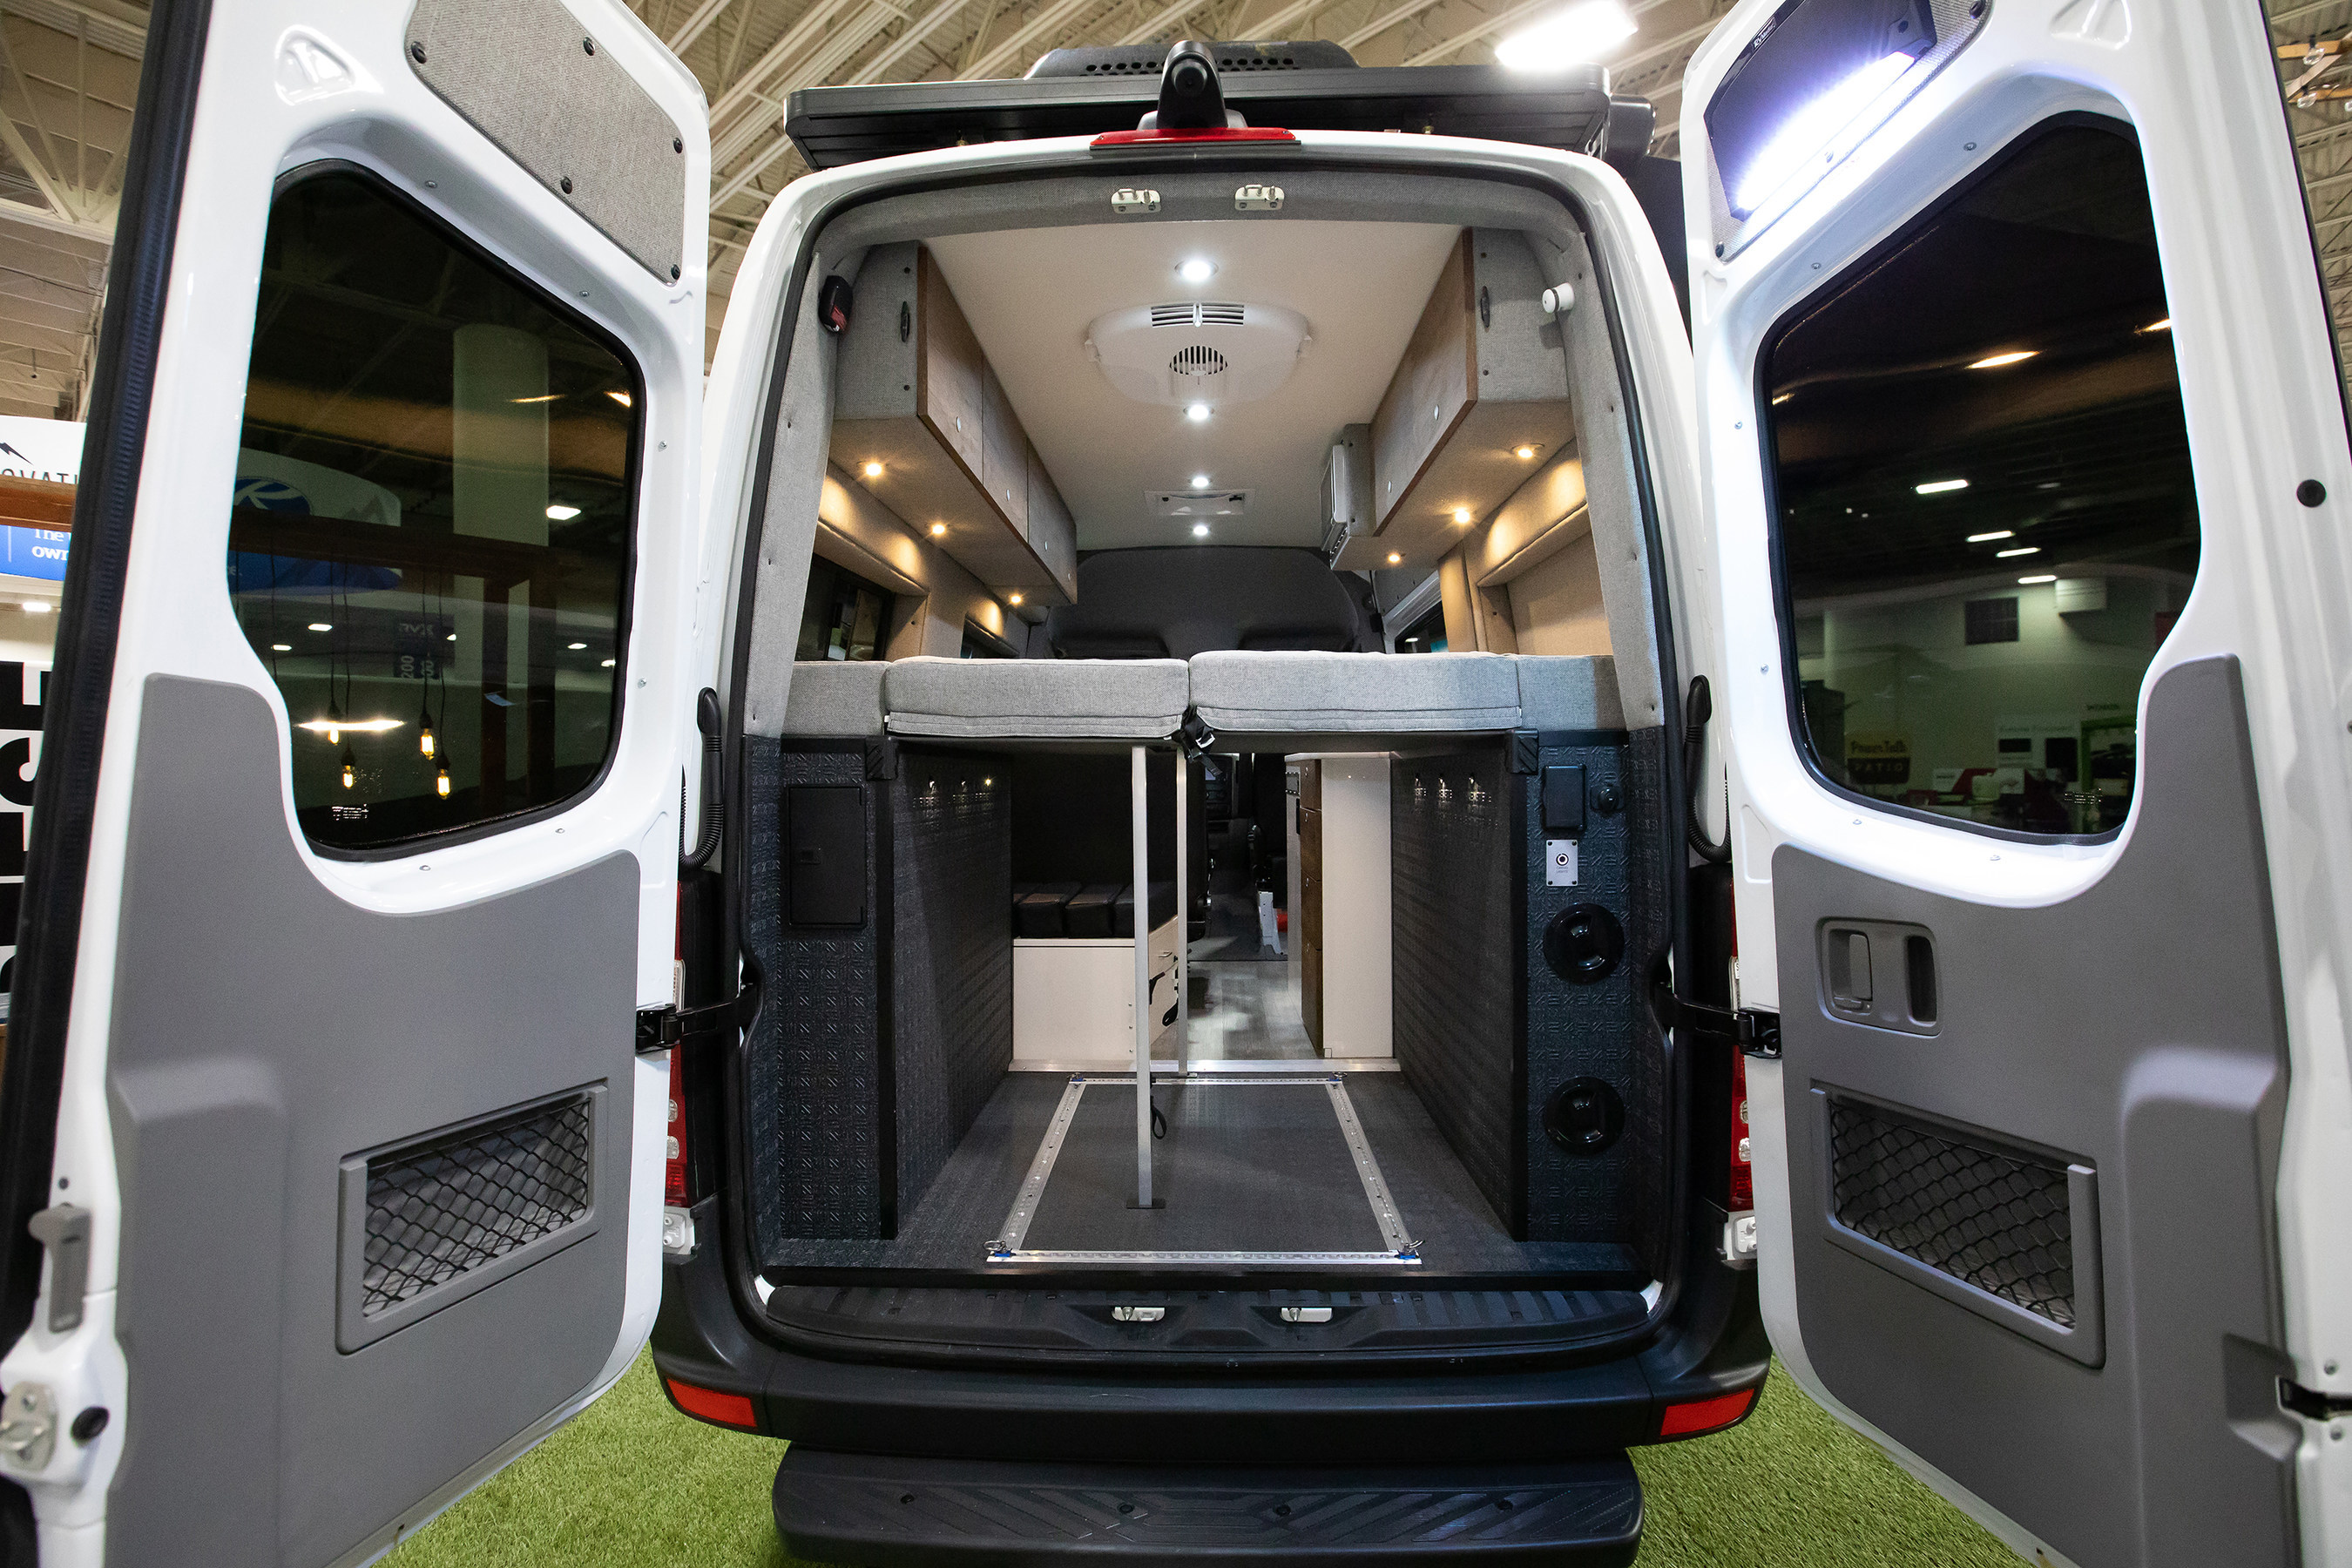 The rear view of the GearHauler garage and the DreamWeaver murphy bed and workbench system in the all new Storyteller Overland MODE 4x4 Adventure Van Series shown here on the Mercedes-Benz Sprinter platform.